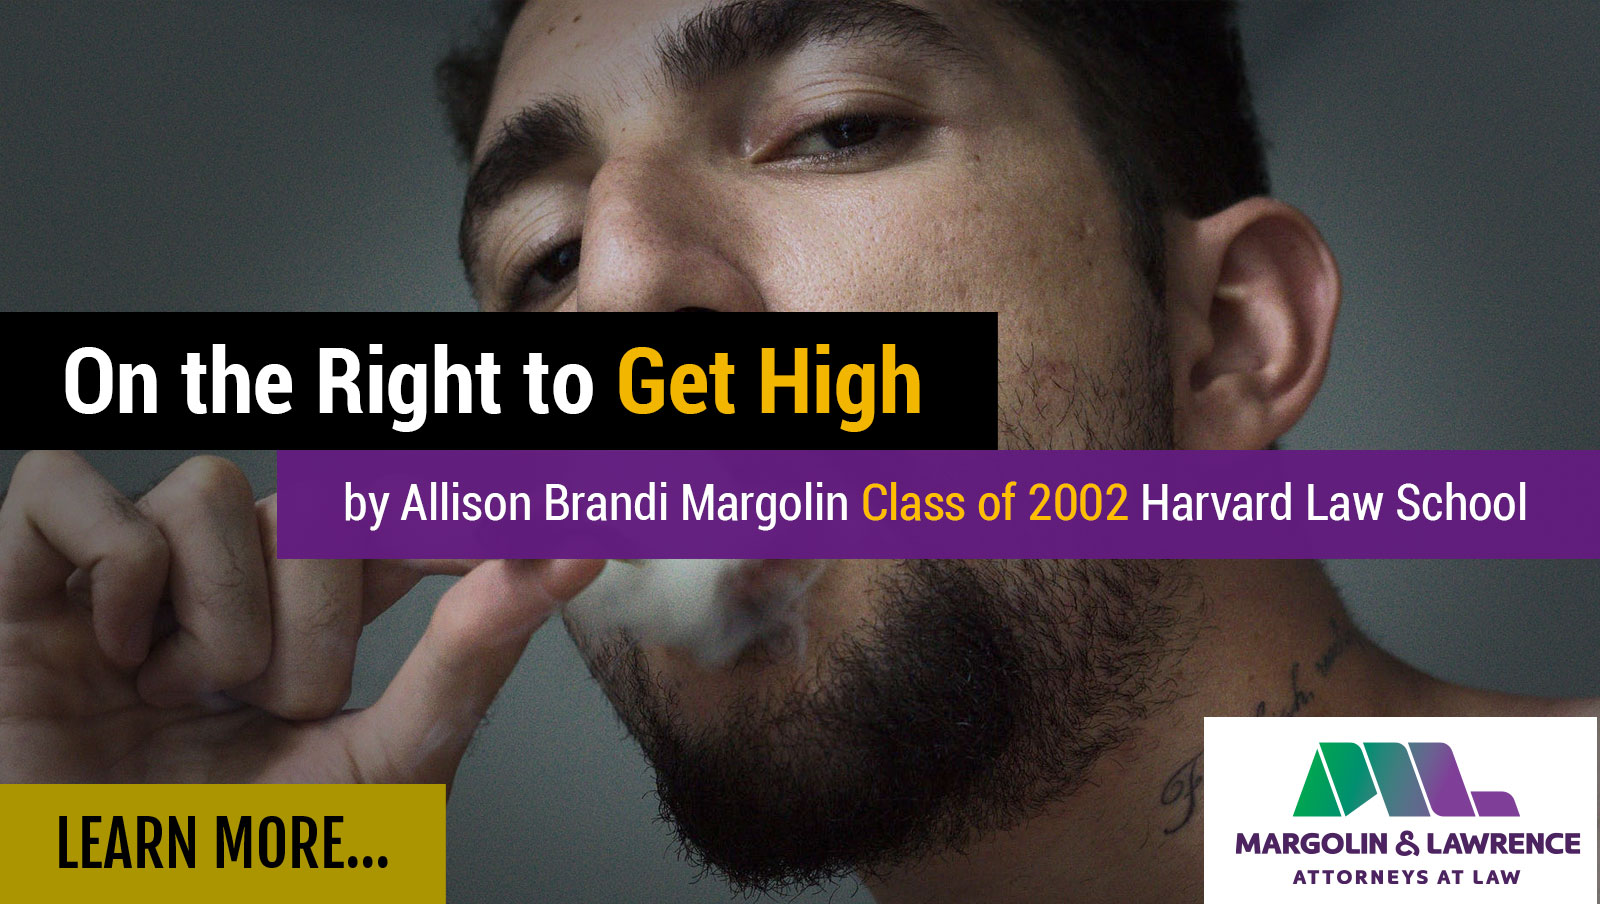 On The Right to Get High Image